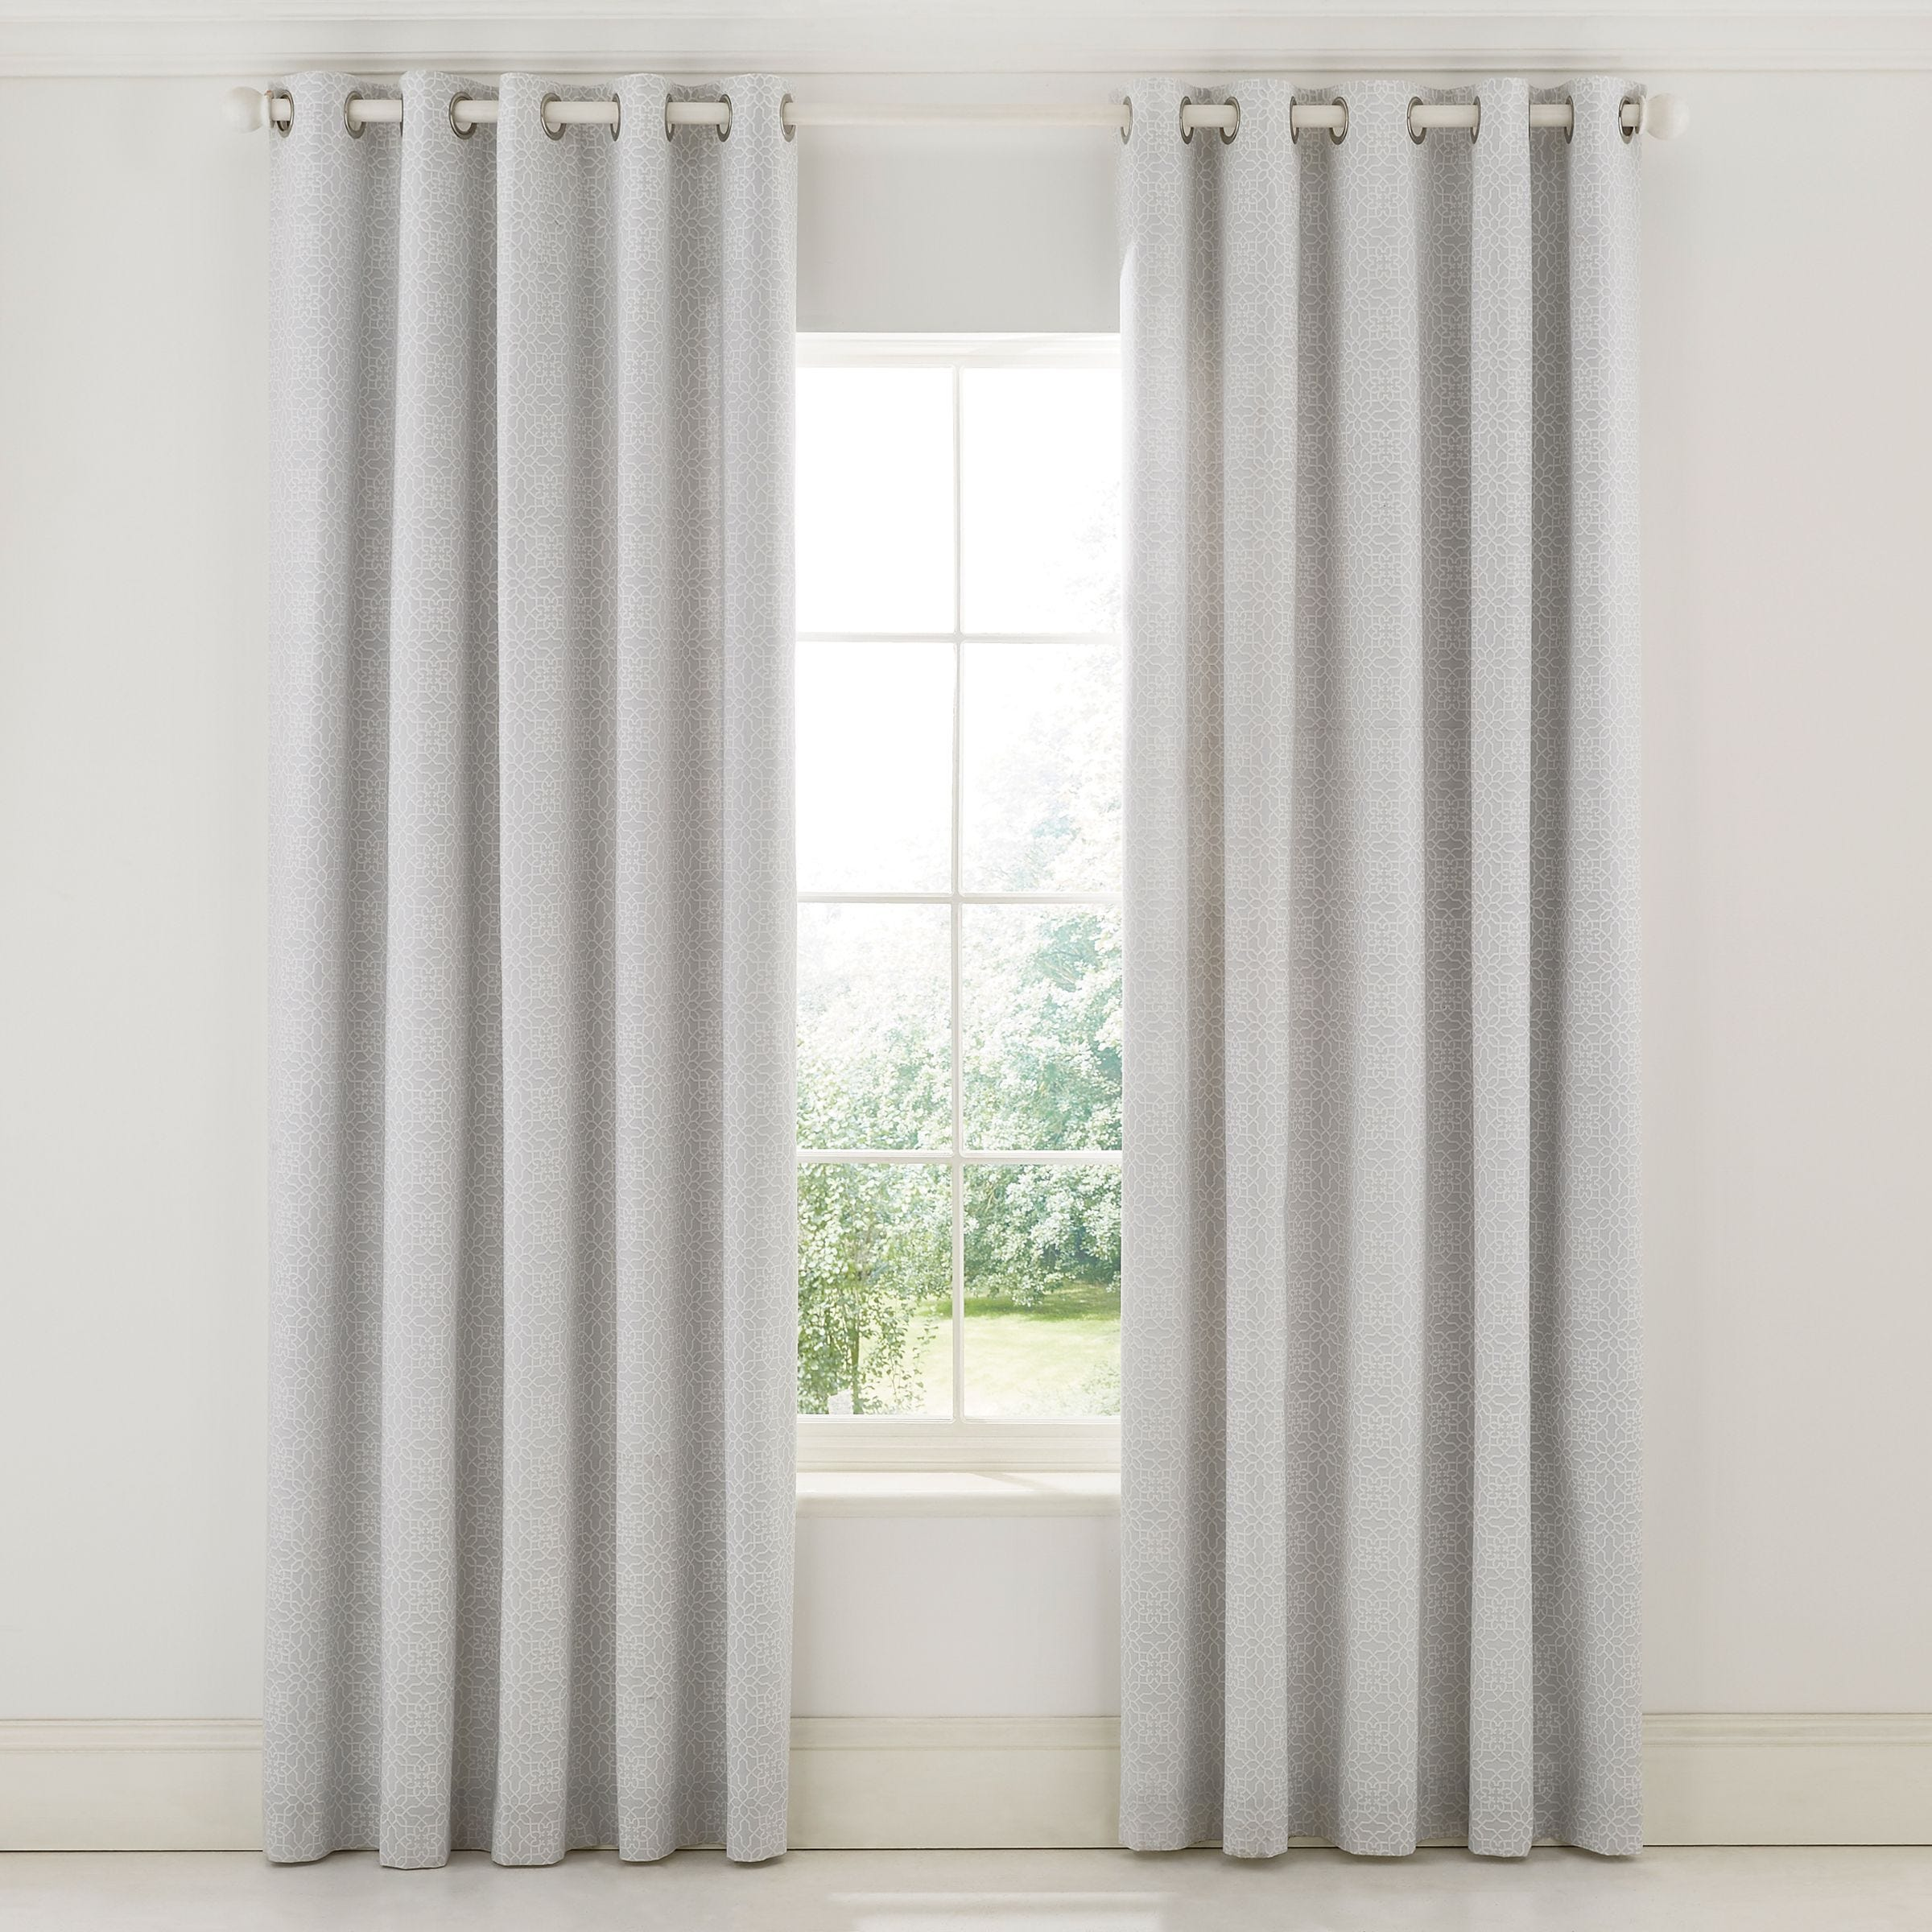 Sanderson Bedding Chiswick Grove Lined Curtains, Silver